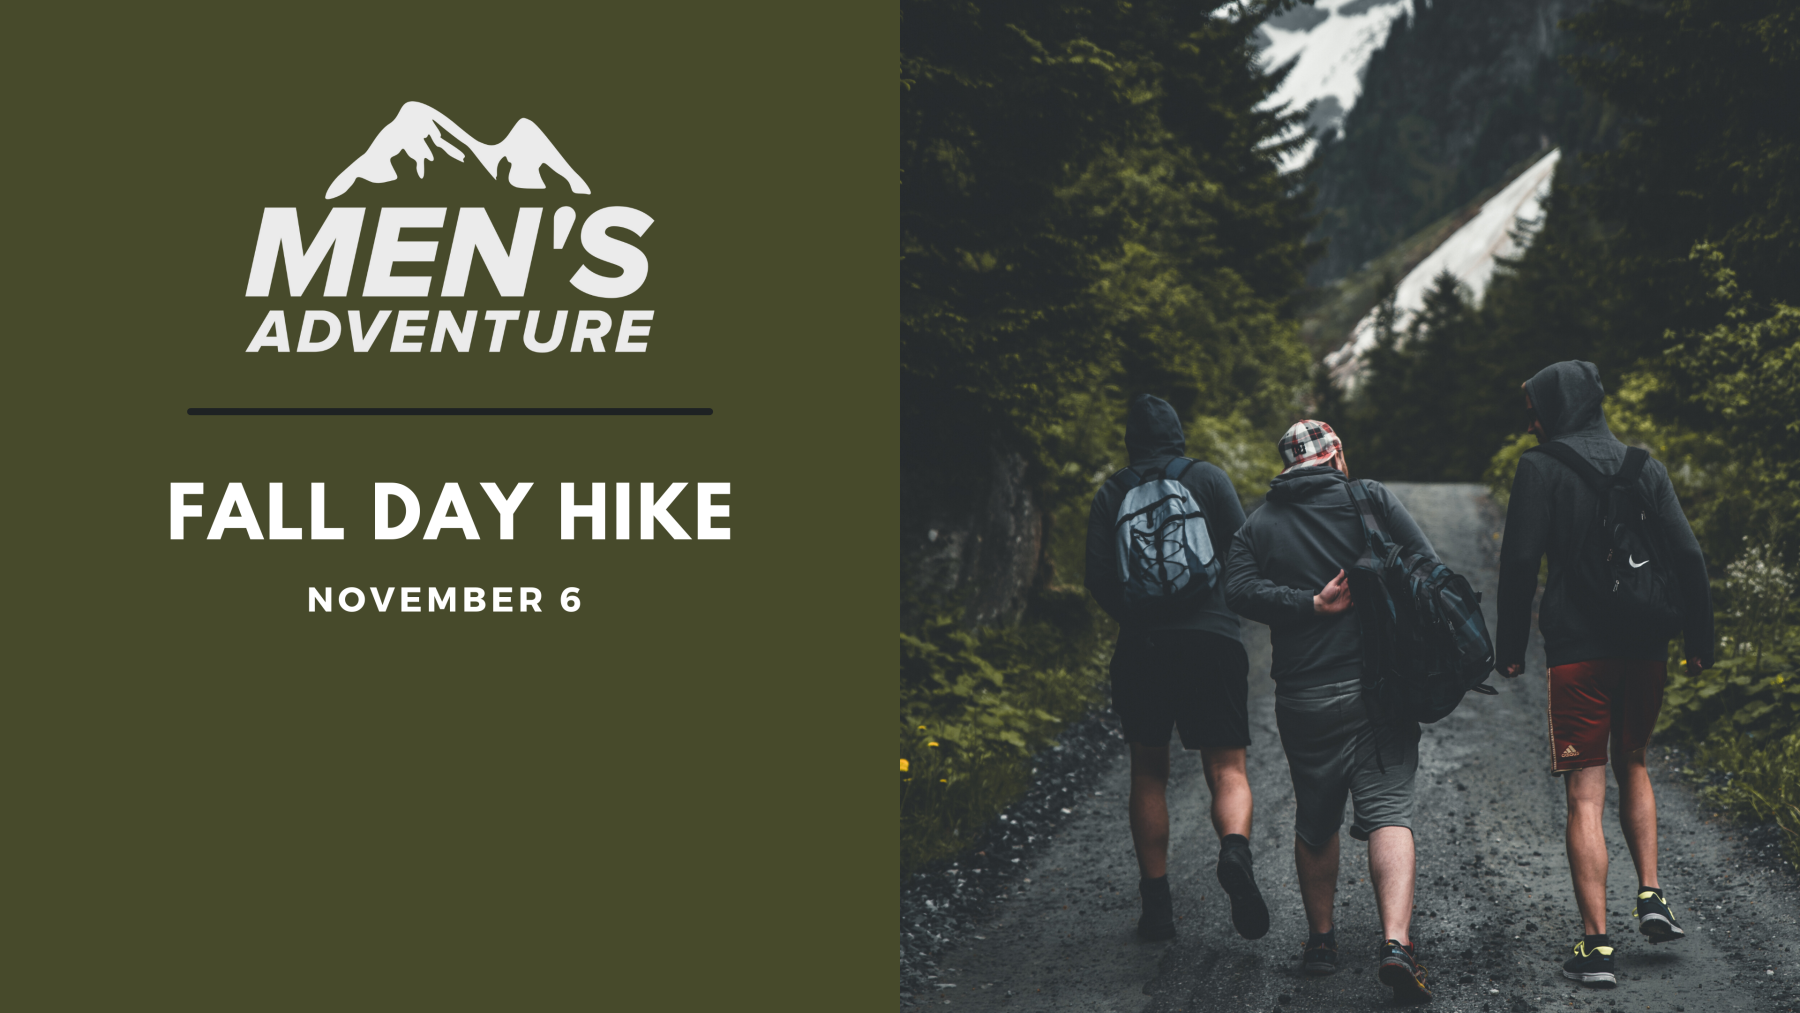 Men's Adventure Group - Fall Day Hike